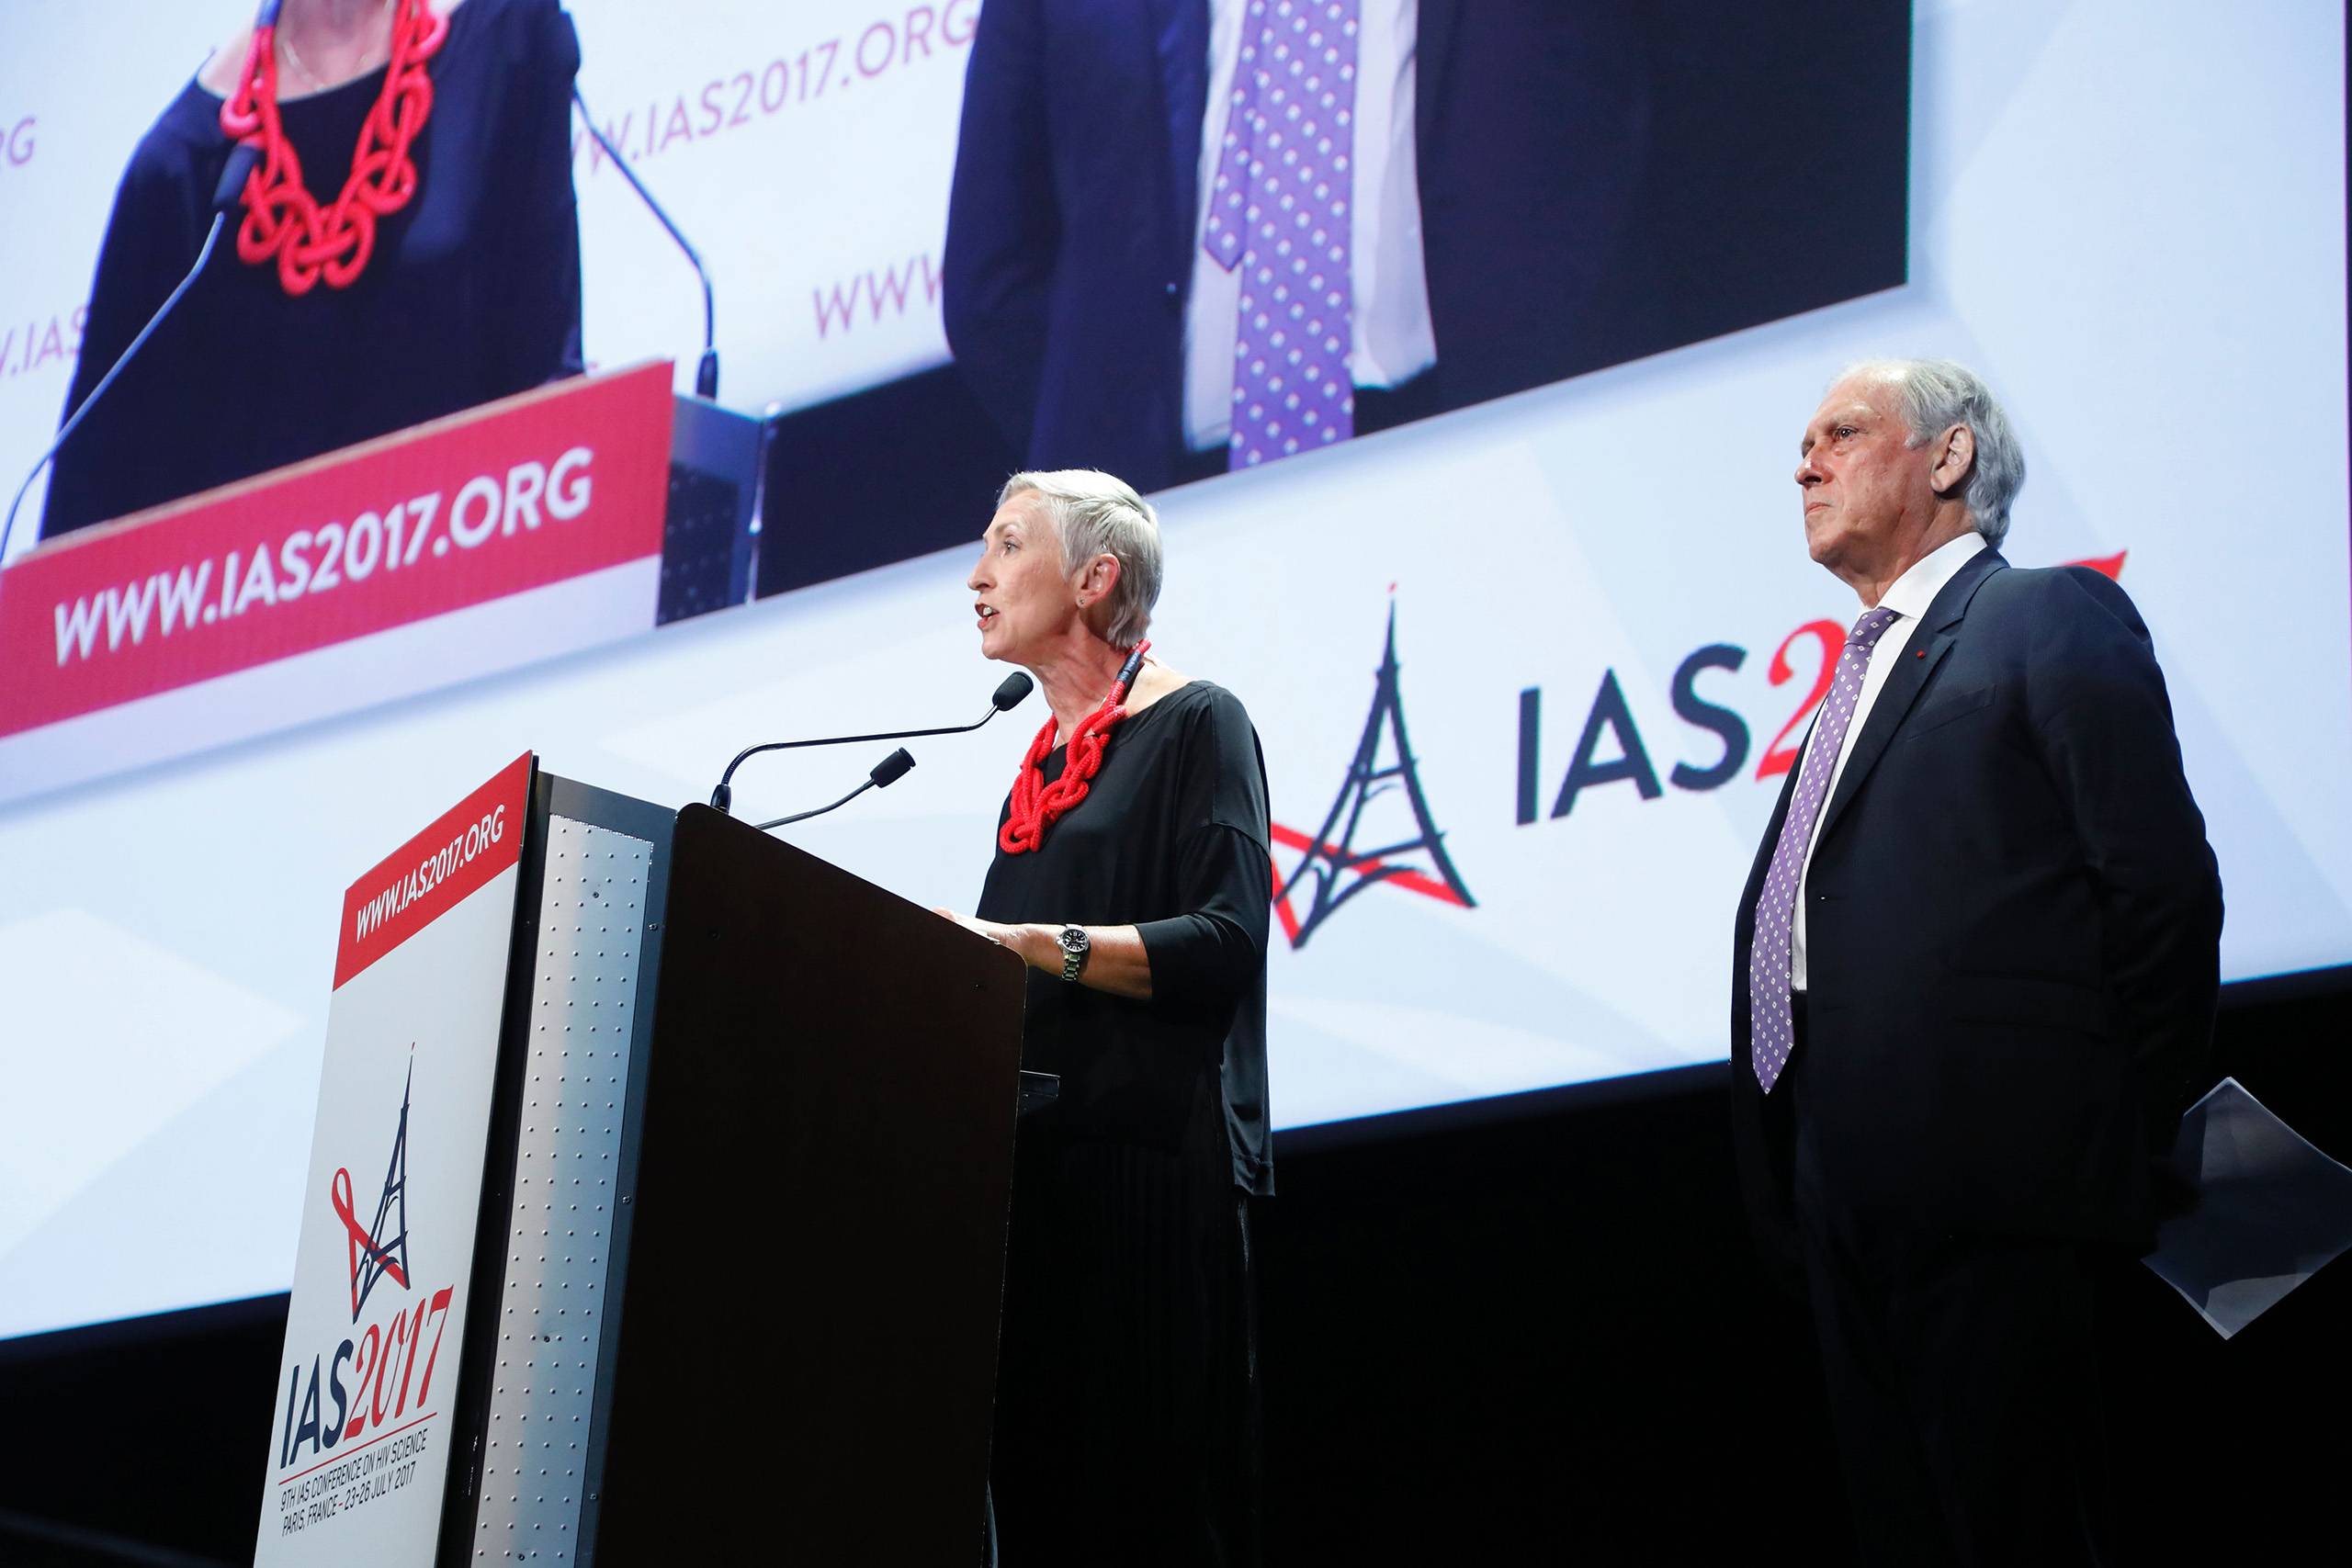 International AIDS Society president Linda-Gail Bekker and President of the French National Ethics Advisory Committee  and conference chairman Jean-Francois Delfraissy  attend the opening of the 9th International AIDS Society conference on HIV Science on July 23, 2017, in Paris.